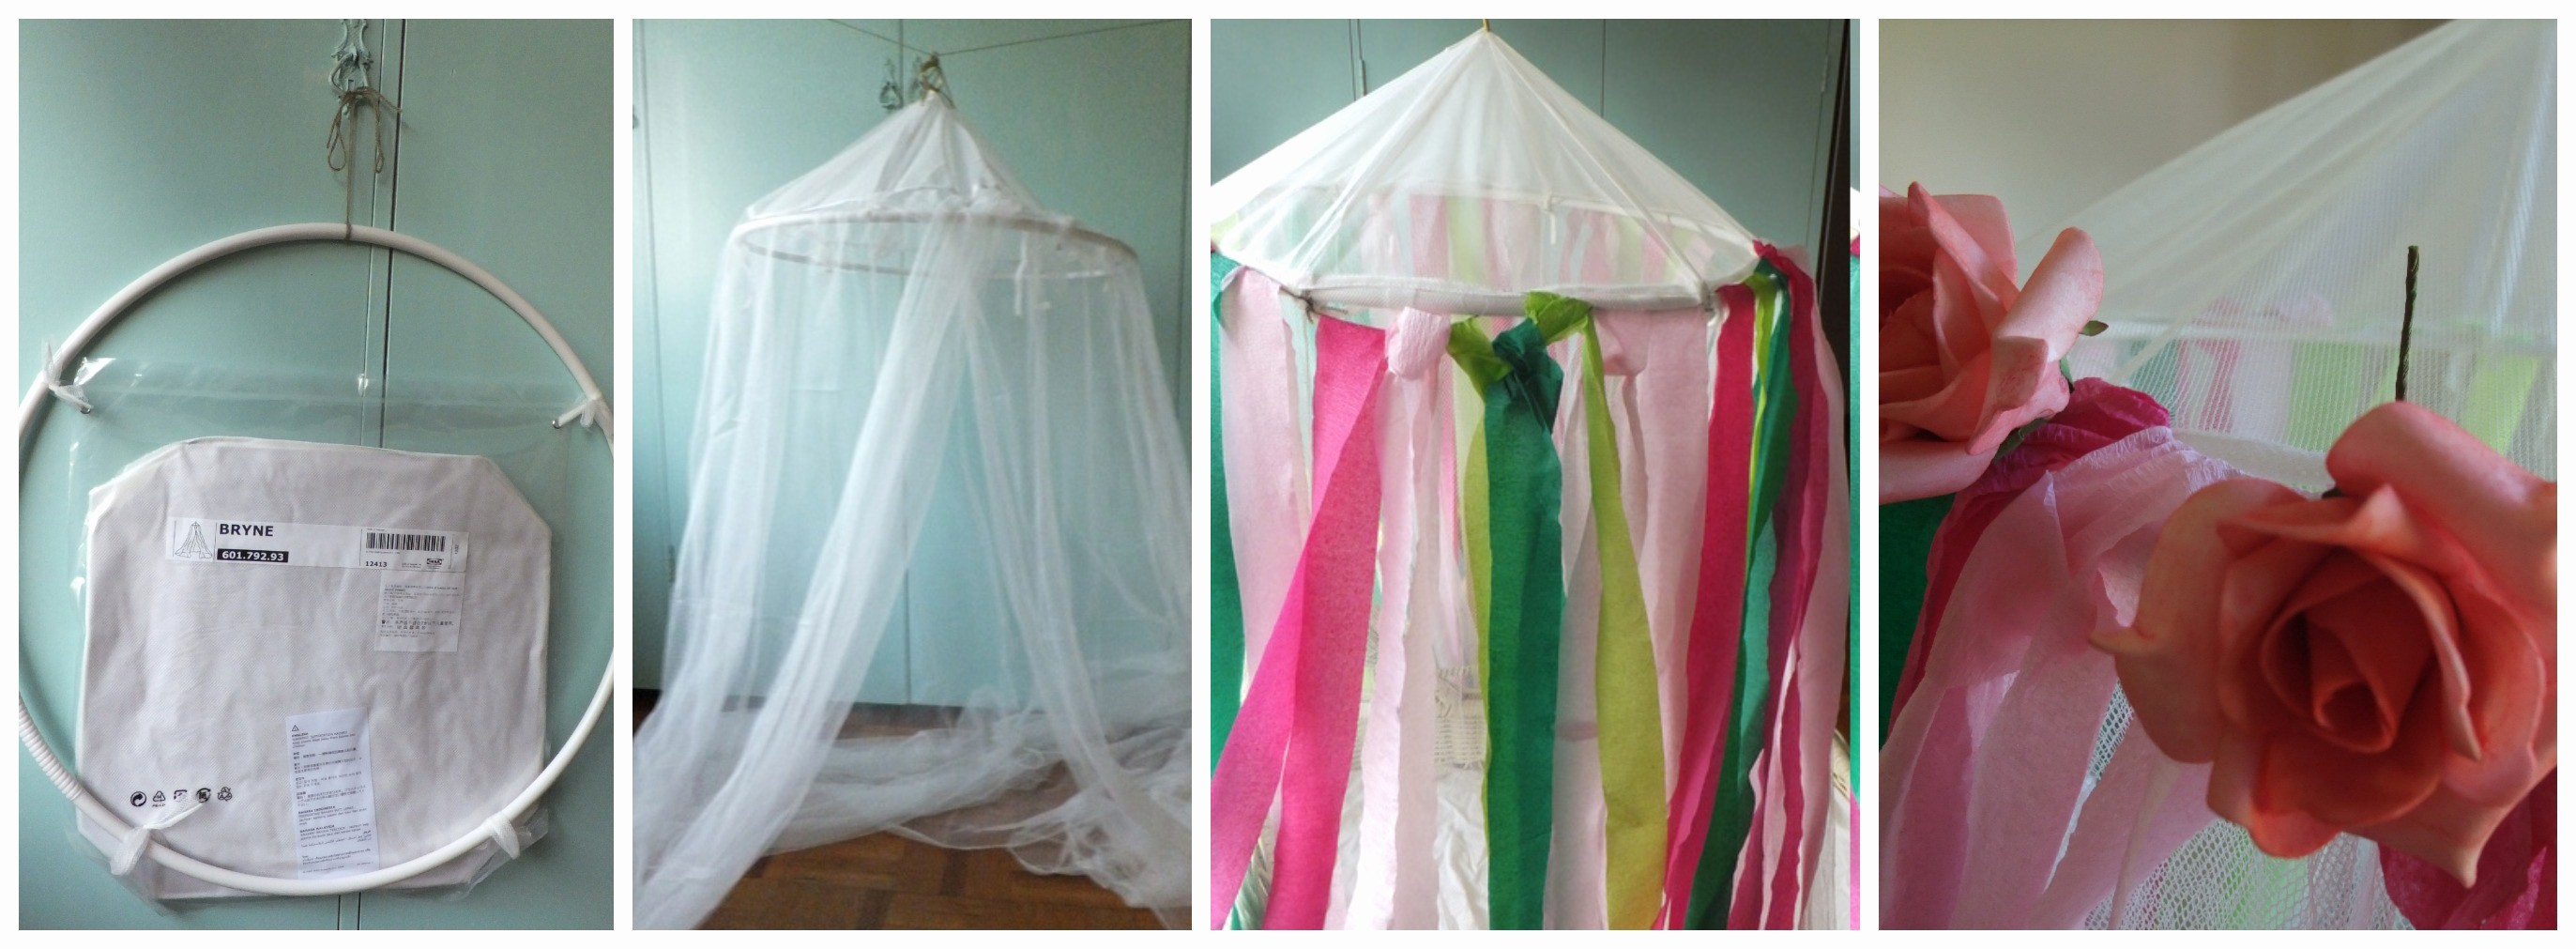 How to Make Name Tents Beautiful May